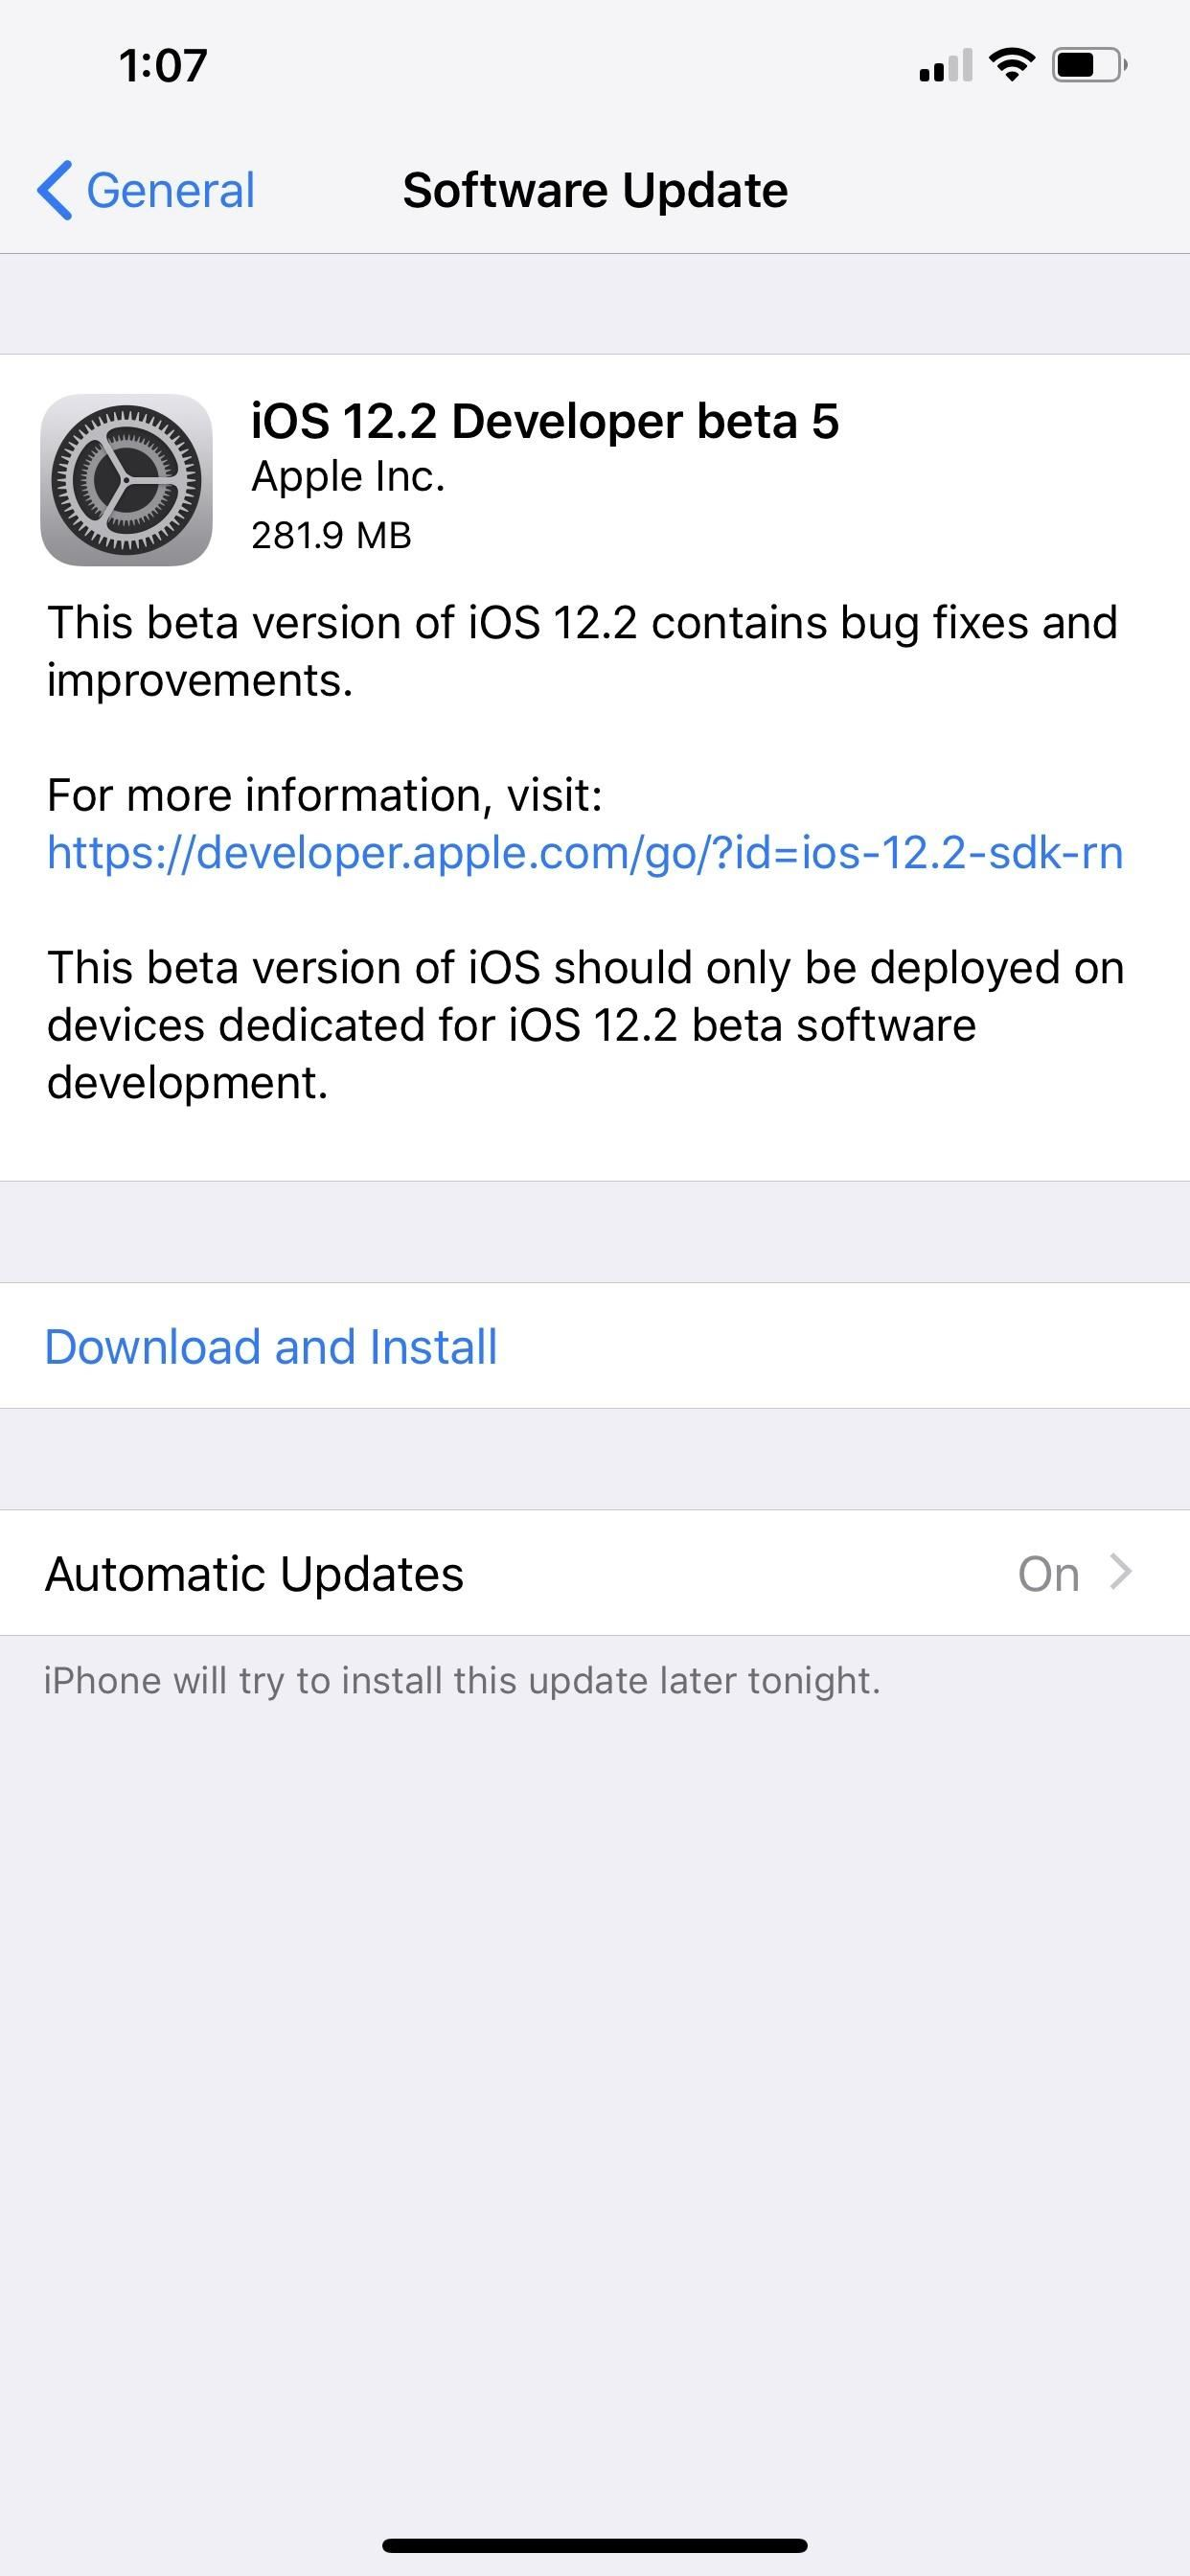 Apple just released iOS 12.2 Developer Beta 5 for iPhone with small UI Tweaks